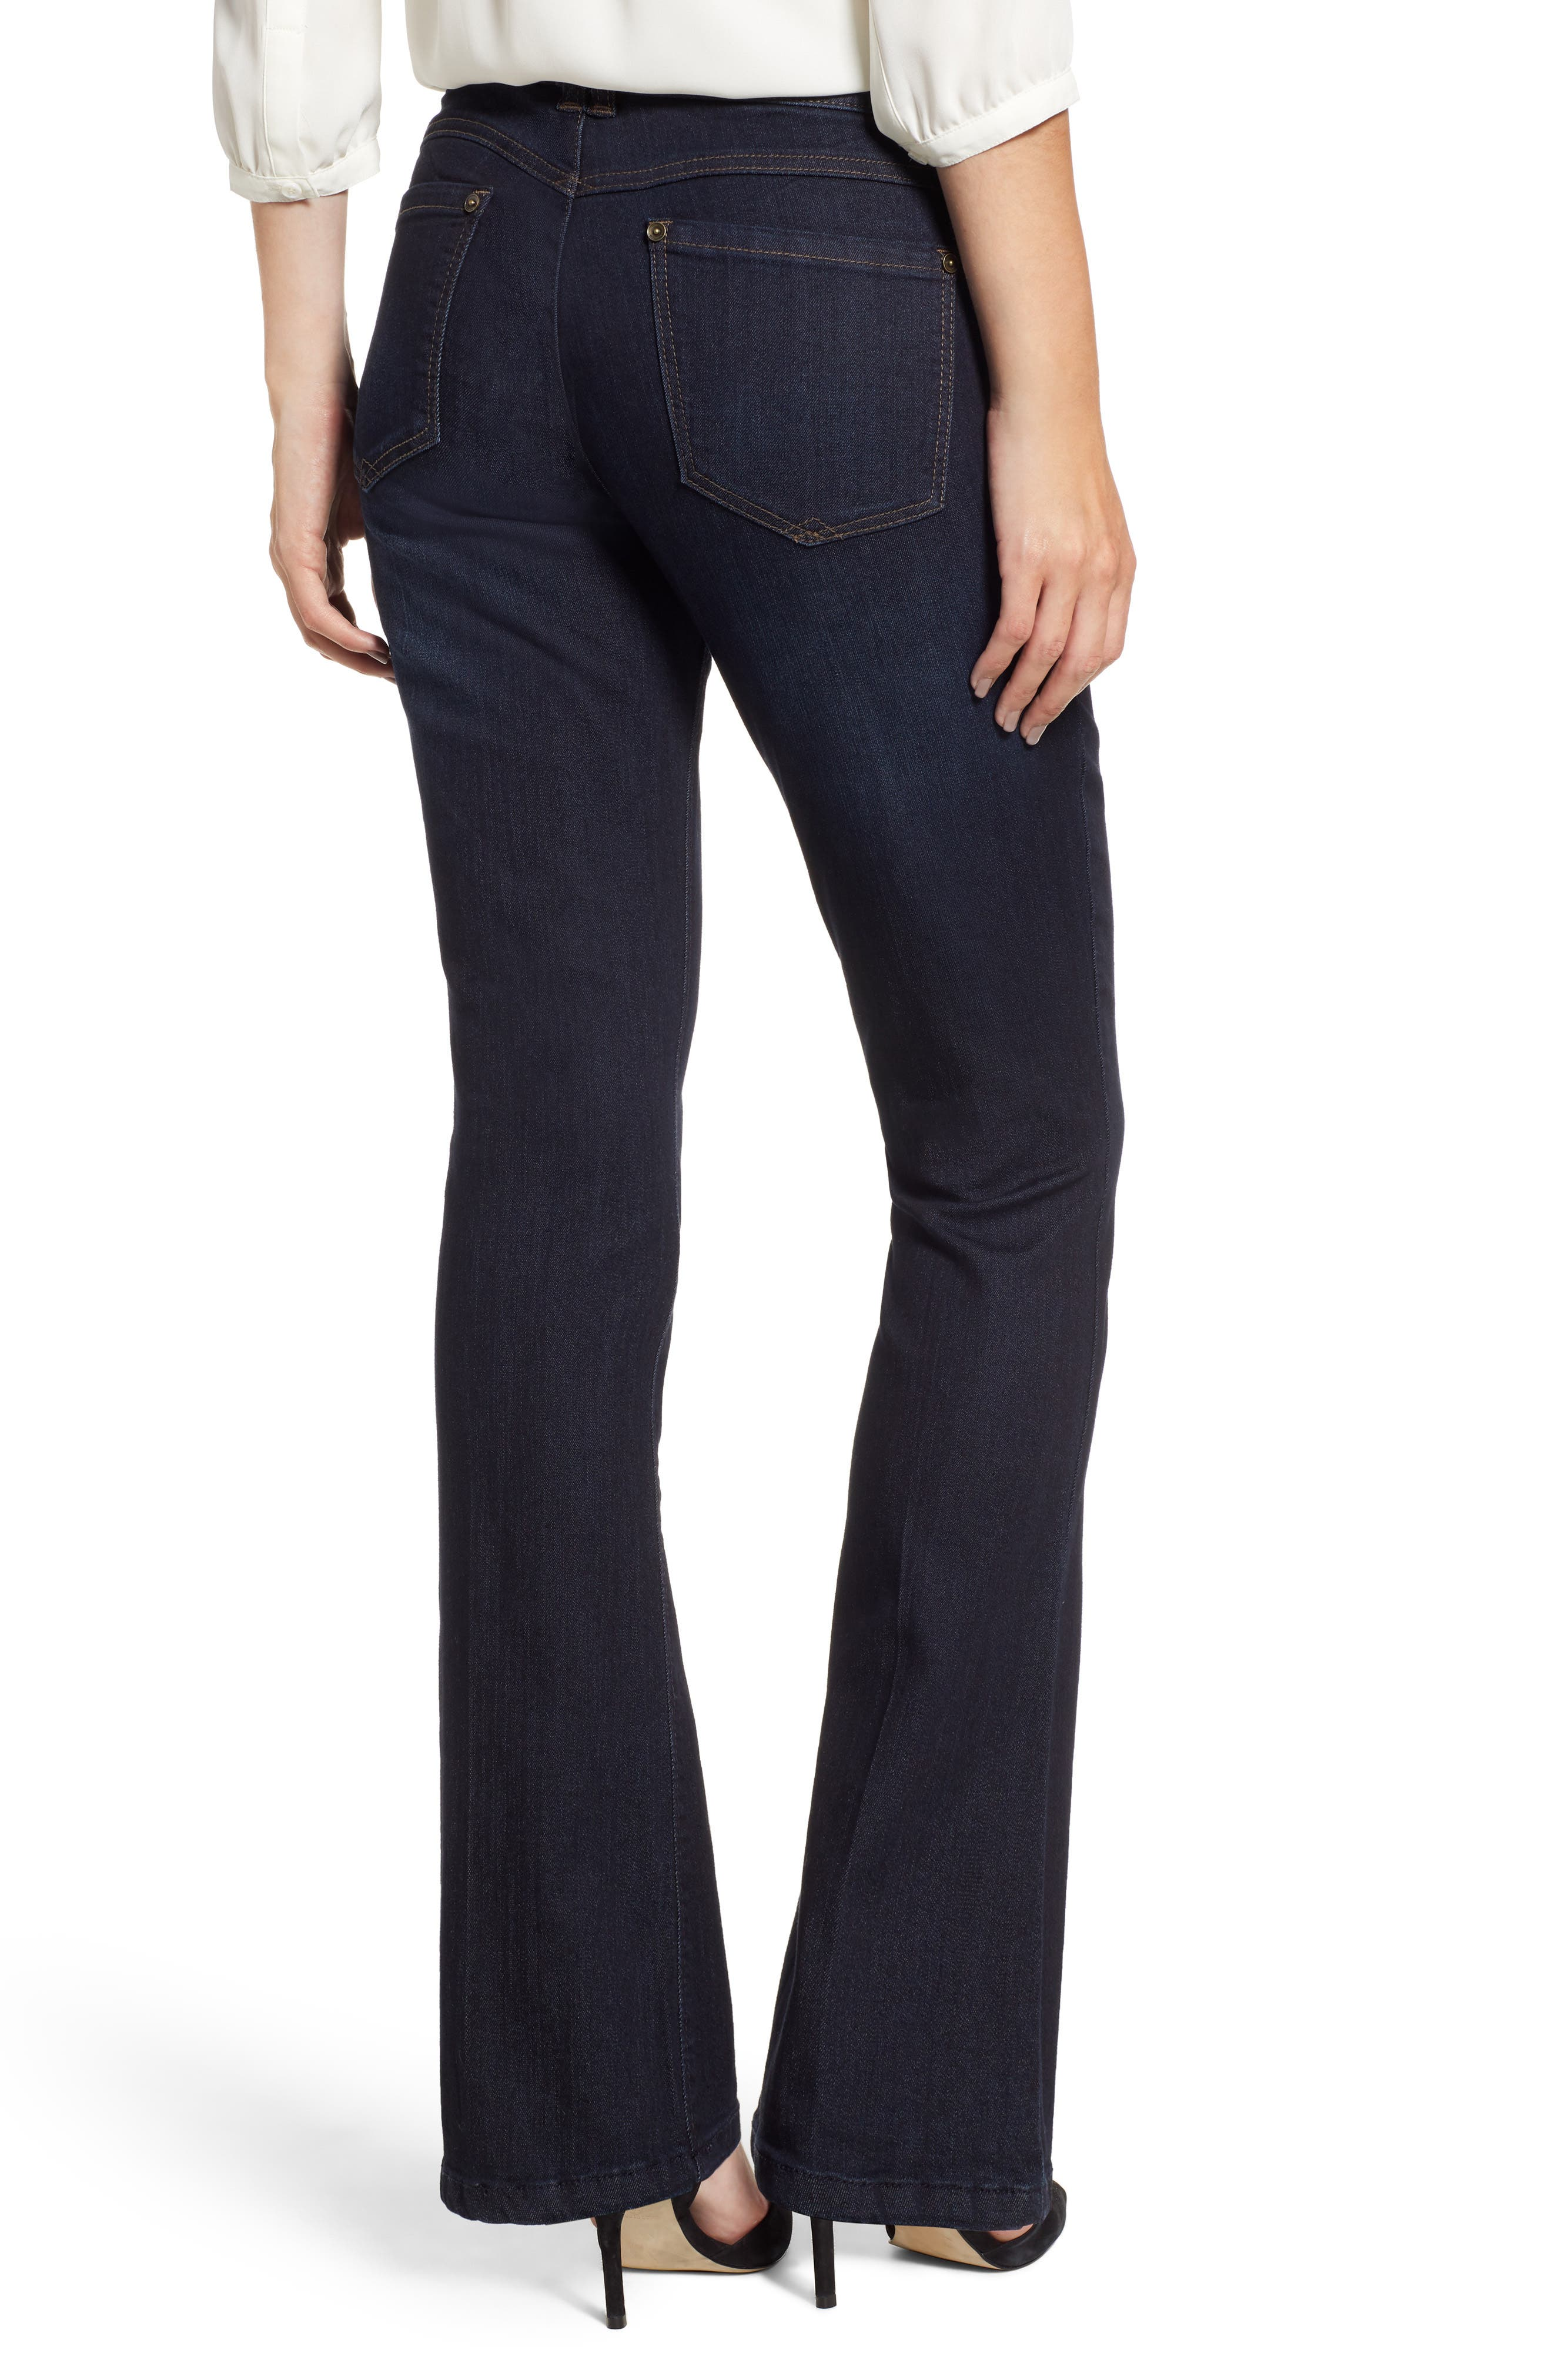 Ab-solution Itty Bitty Bootcut Jeans,                             Alternate thumbnail 2, color,                             INDIGO